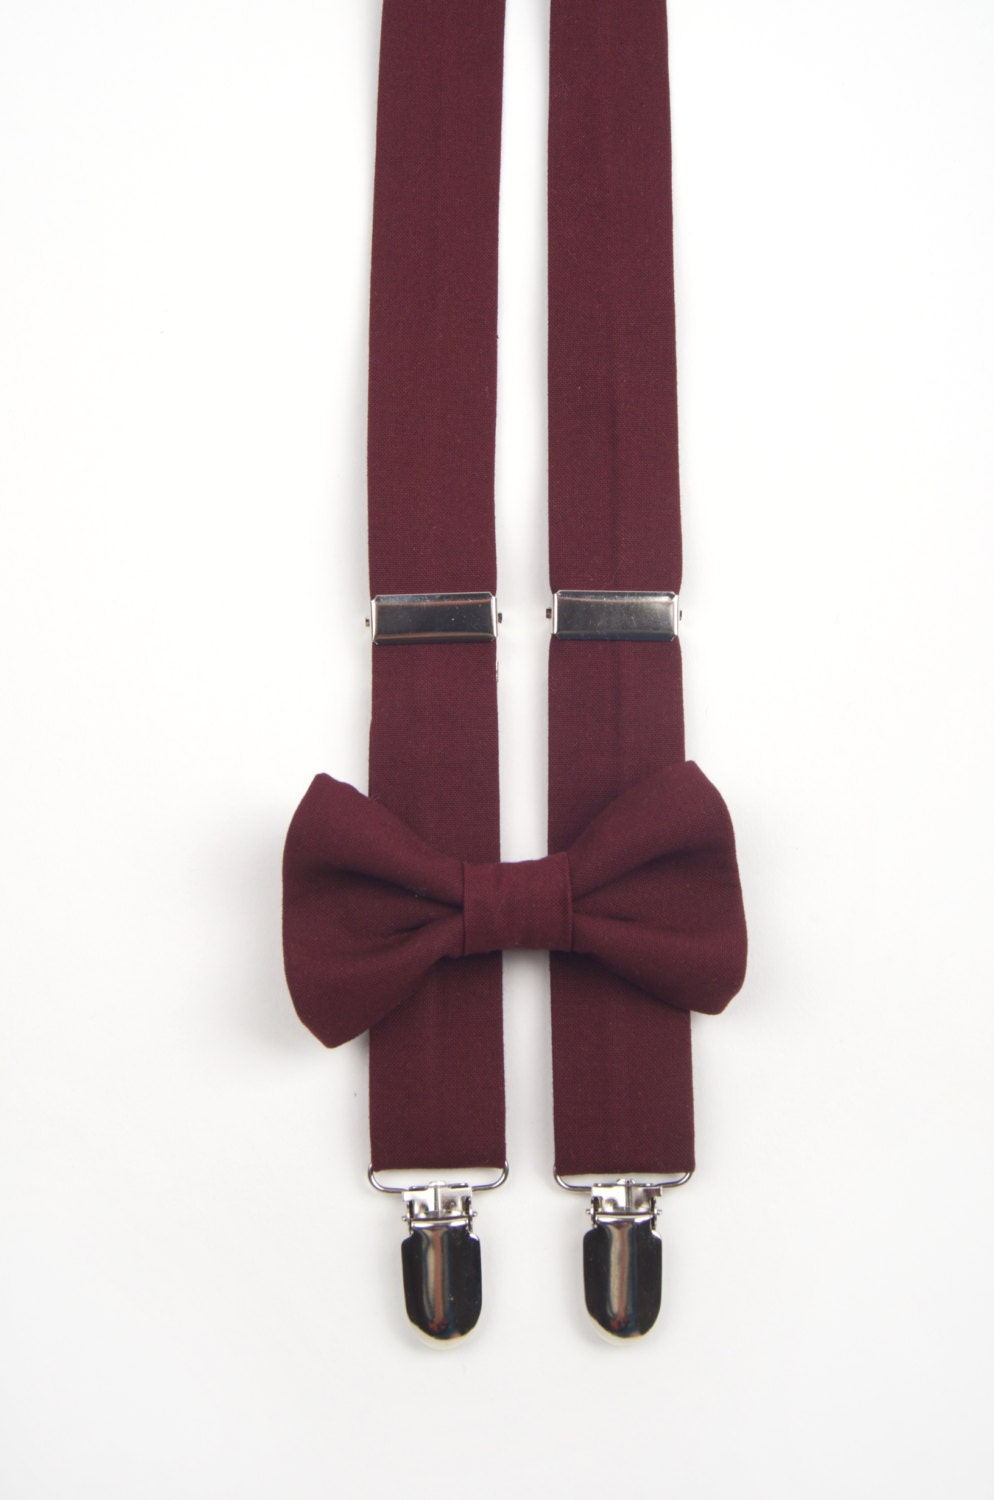 Shop for men's bow ties online at palmmetrf1.ga Browse the latest bowtie styles for men. FREE shipping on orders over $